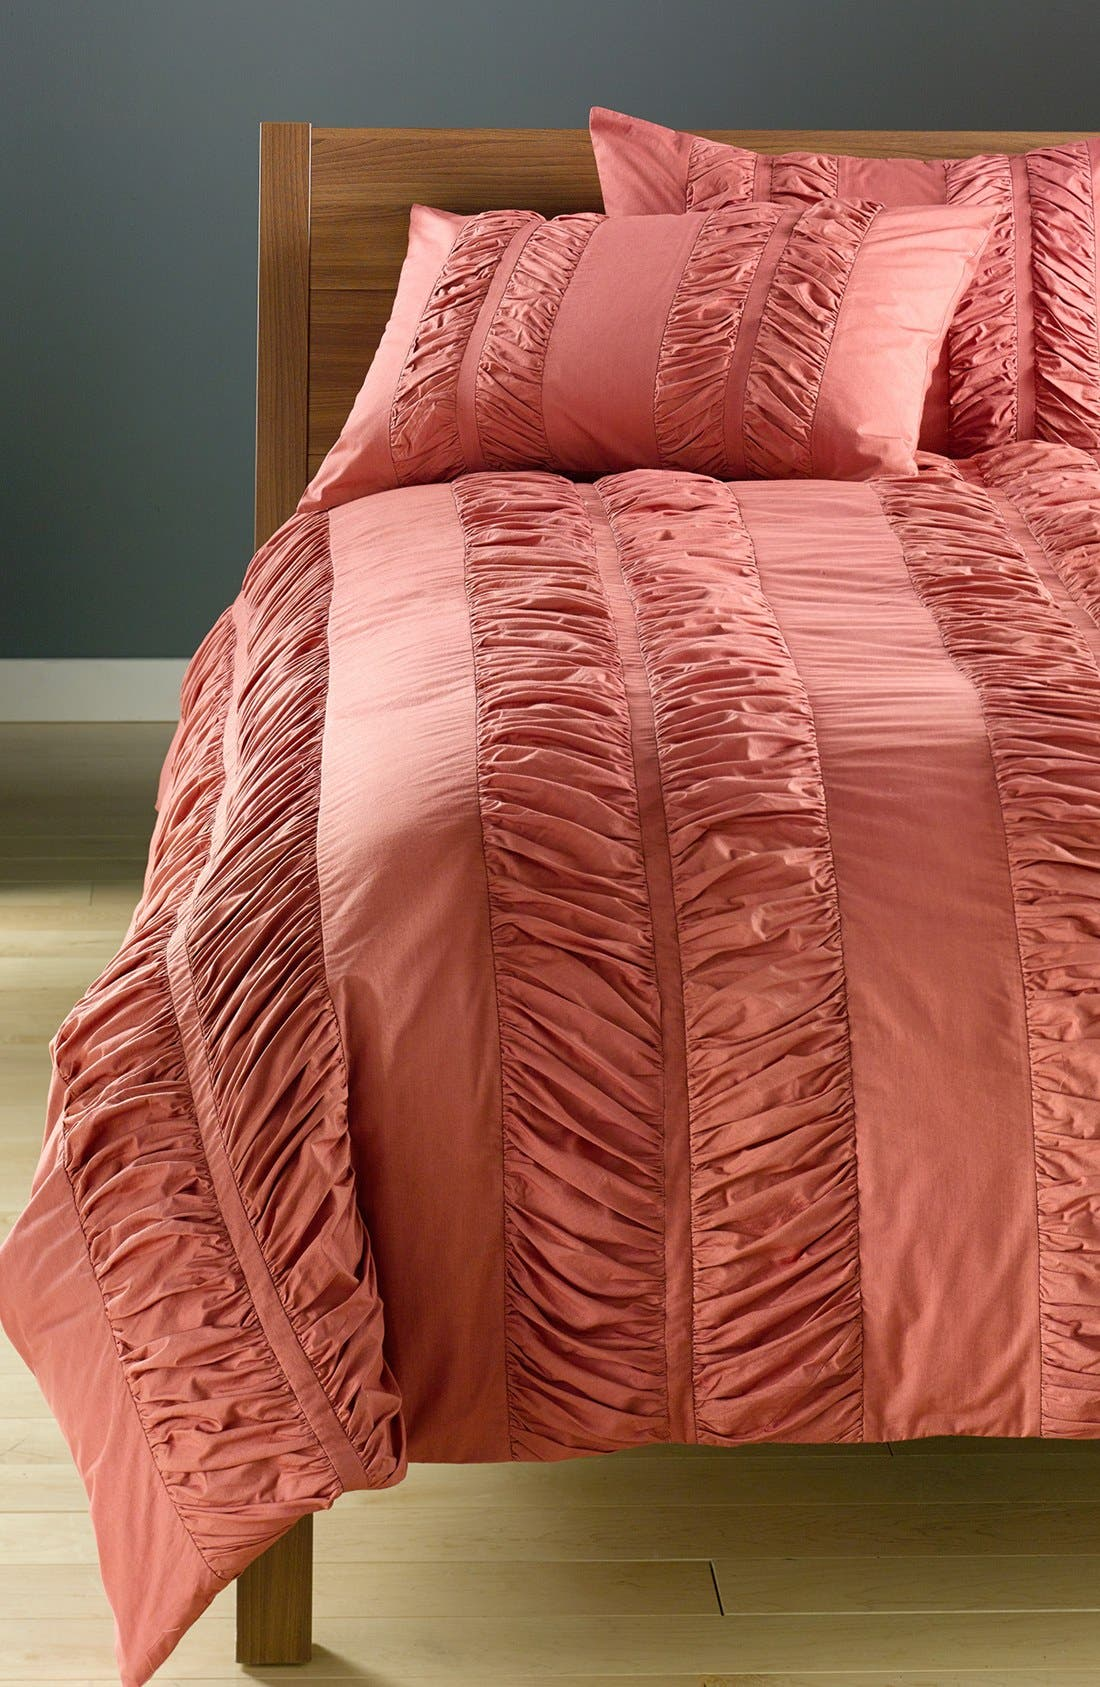 Alternate Image 1 Selected - Nordstrom at Home 'Darcey' Duvet Cover